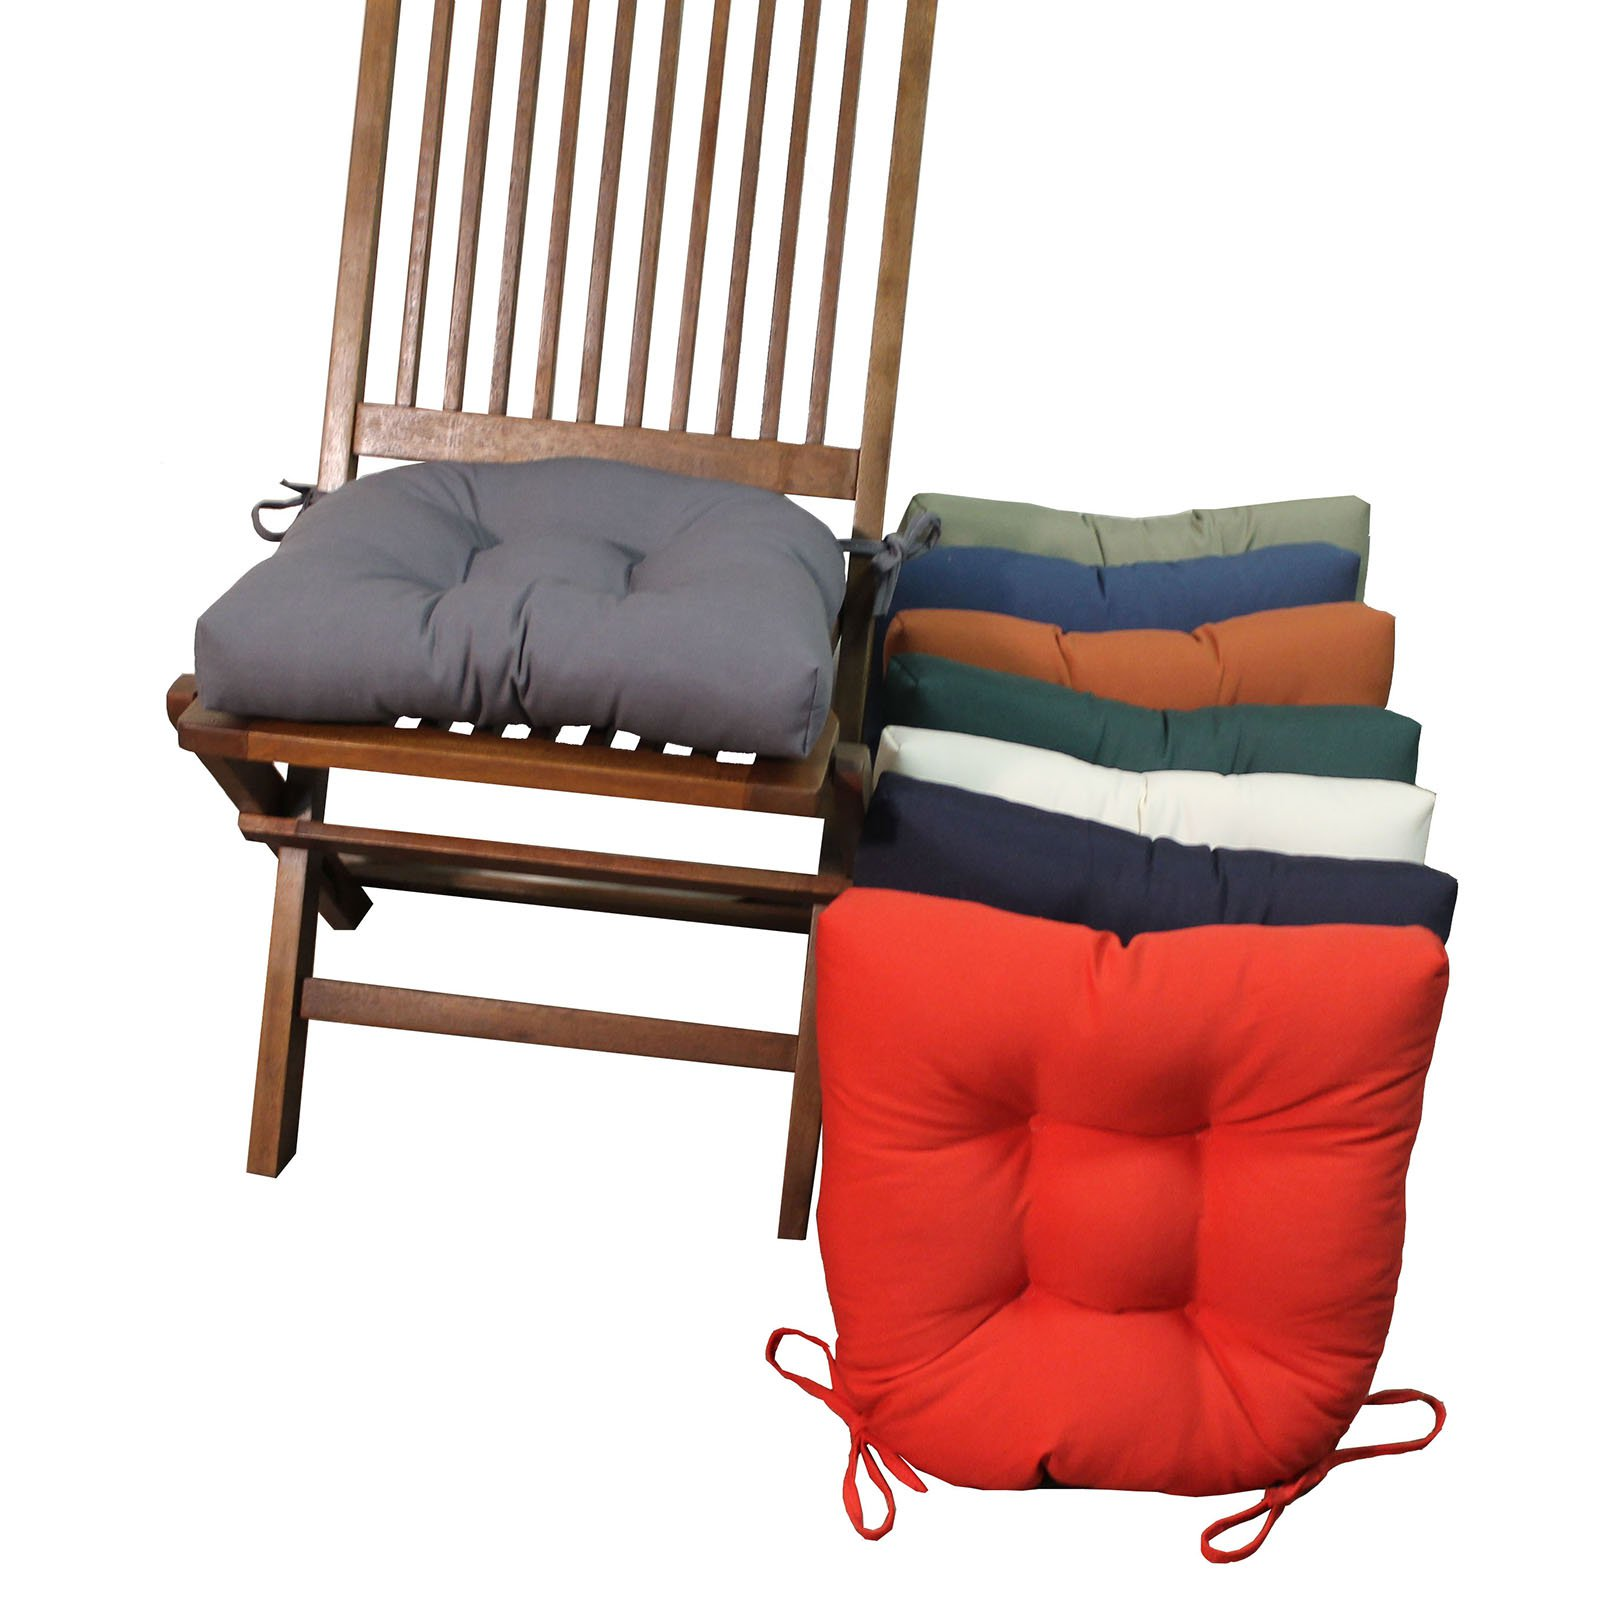 kitchen chairs cushions photo - 7